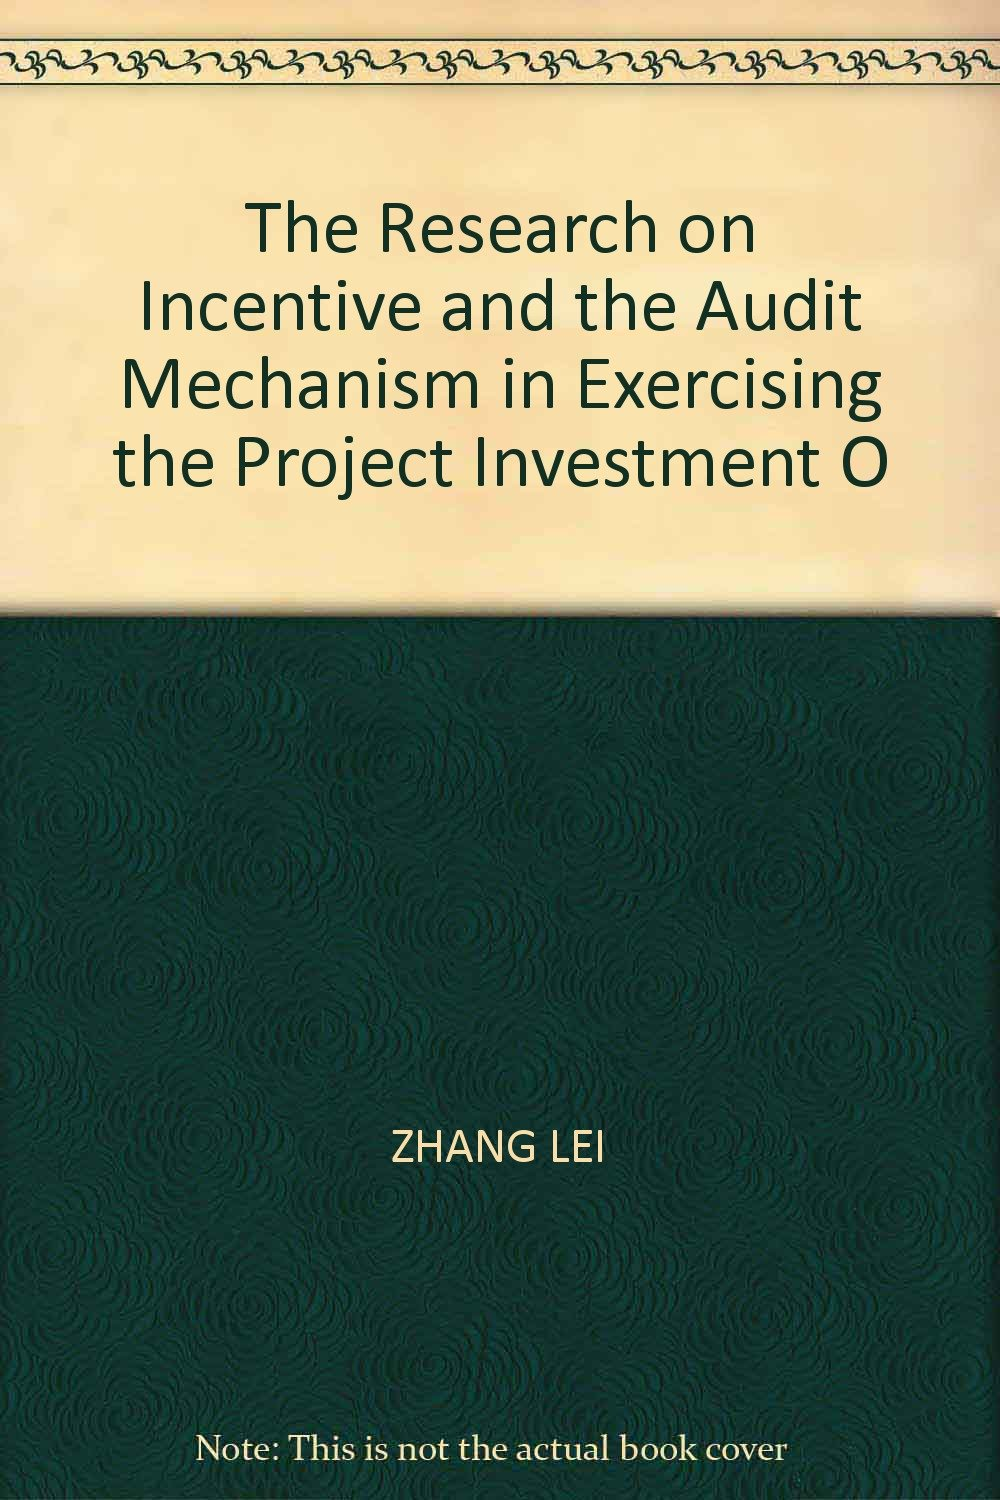 Download The Research on Incentive and the Audit Mechanism in Exercising the Project Investment O pdf epub